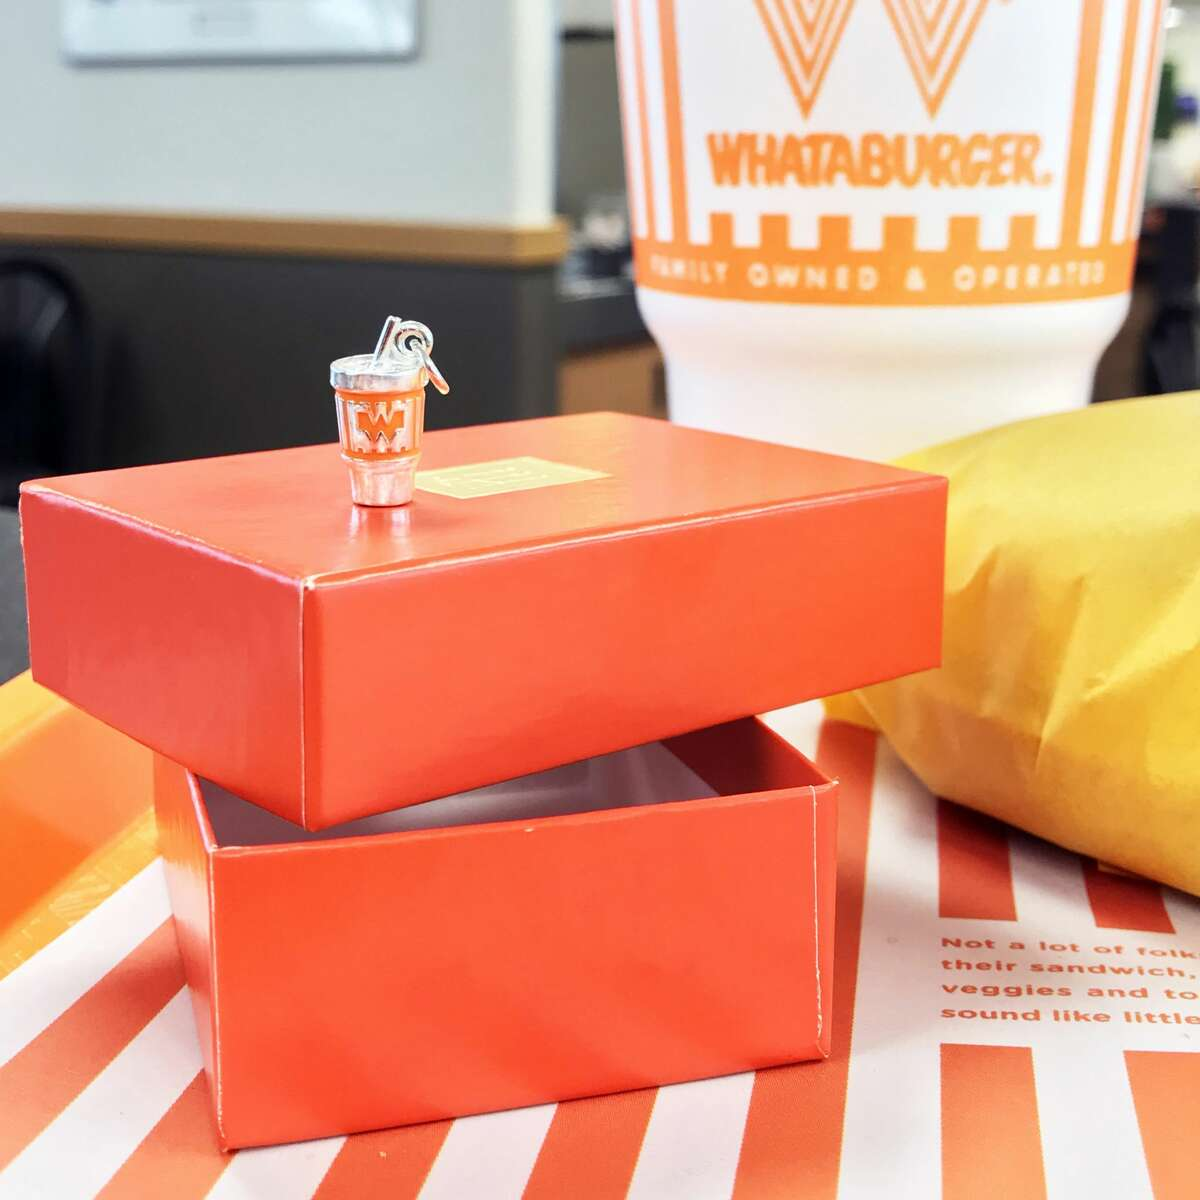 James Avery Whataburger cup charm - $80 Buy it here or here.